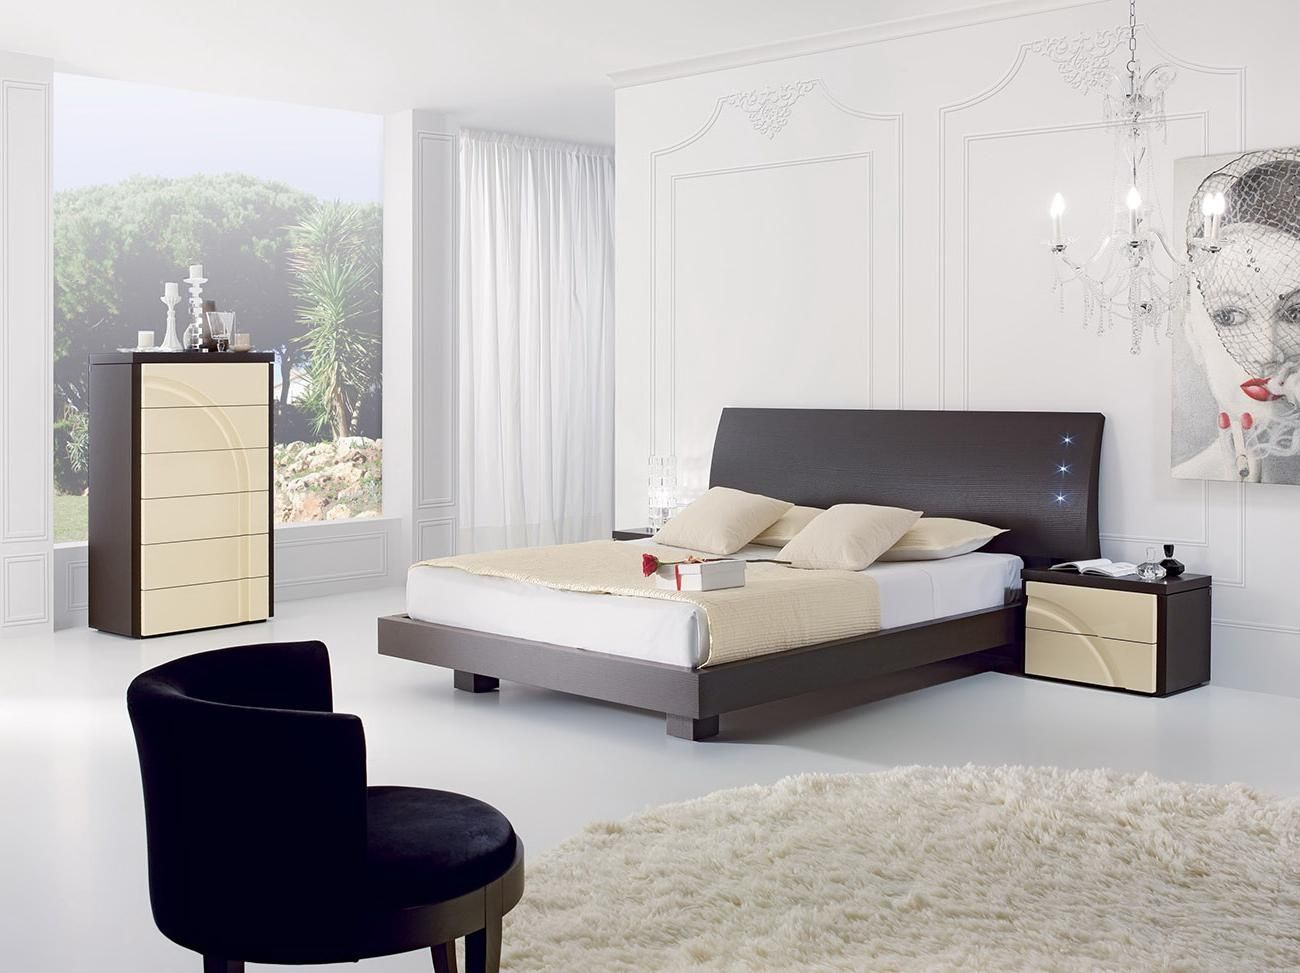 Modern And Stylish Bedroom Decoration With White Black Beige Colors Decorating Bedrooms for Men In Smart and Simple Ways Bedroom design & Modern And Stylish Bedroom Decoration With White Black Beige Colors ...